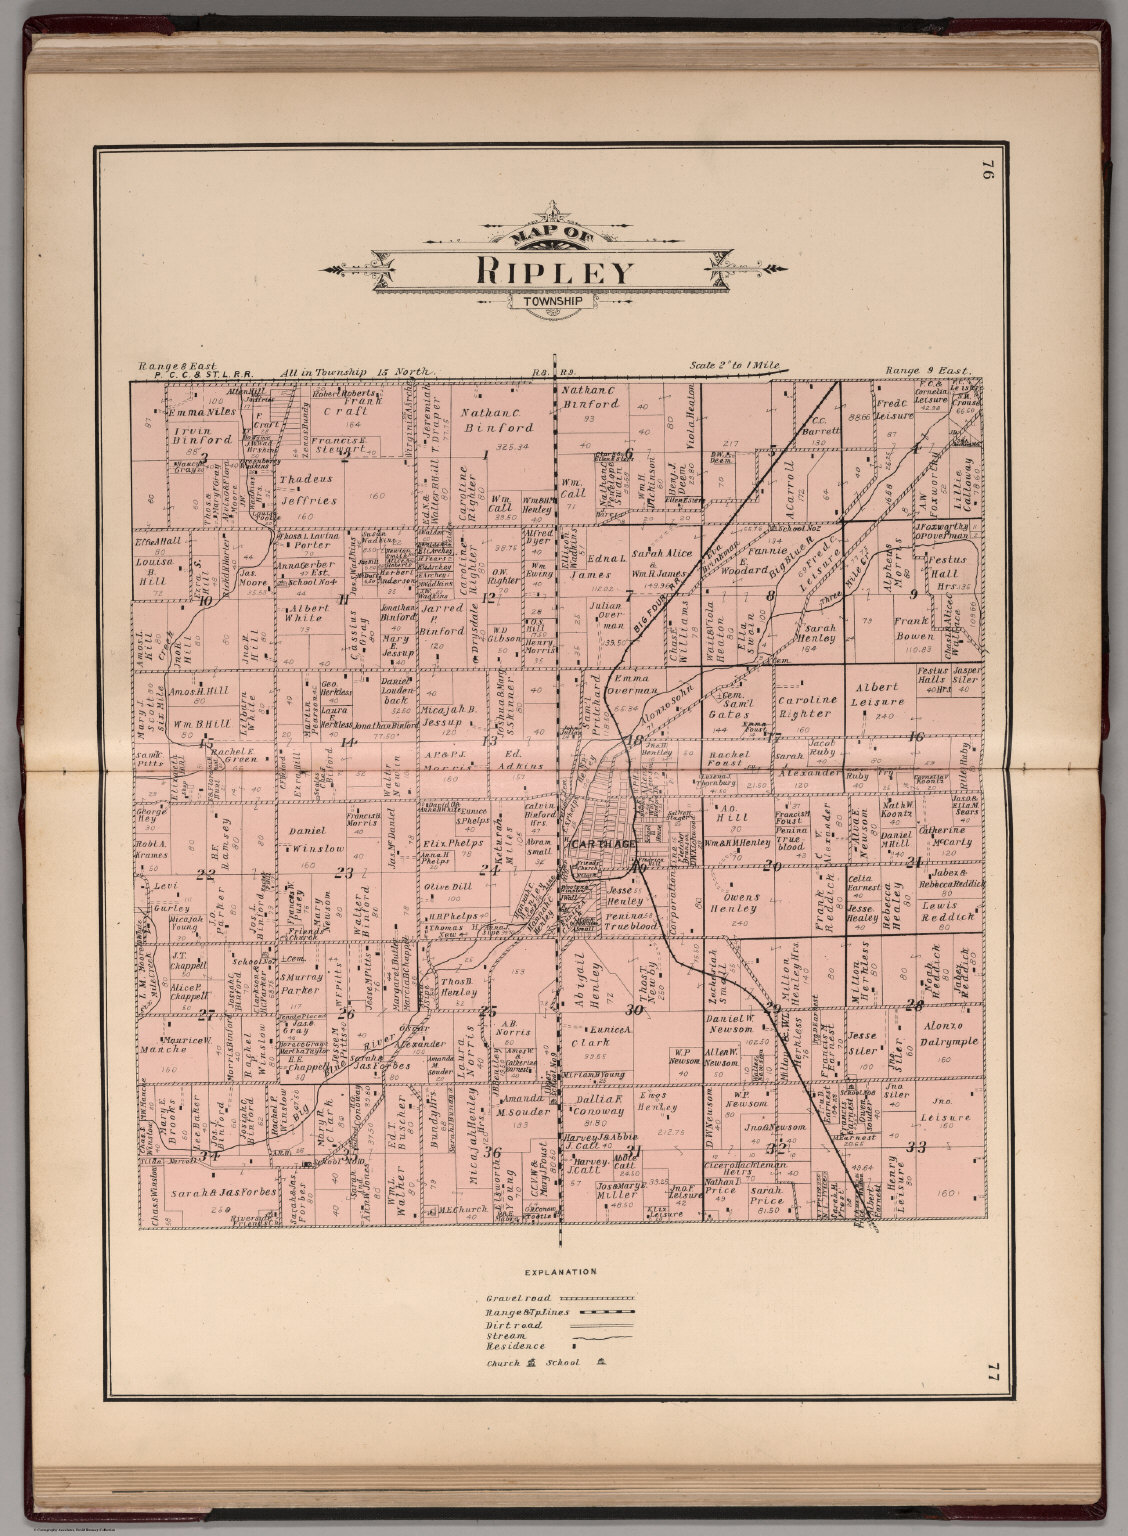 Indiana rush county - Ripley Township Rush County Indiana